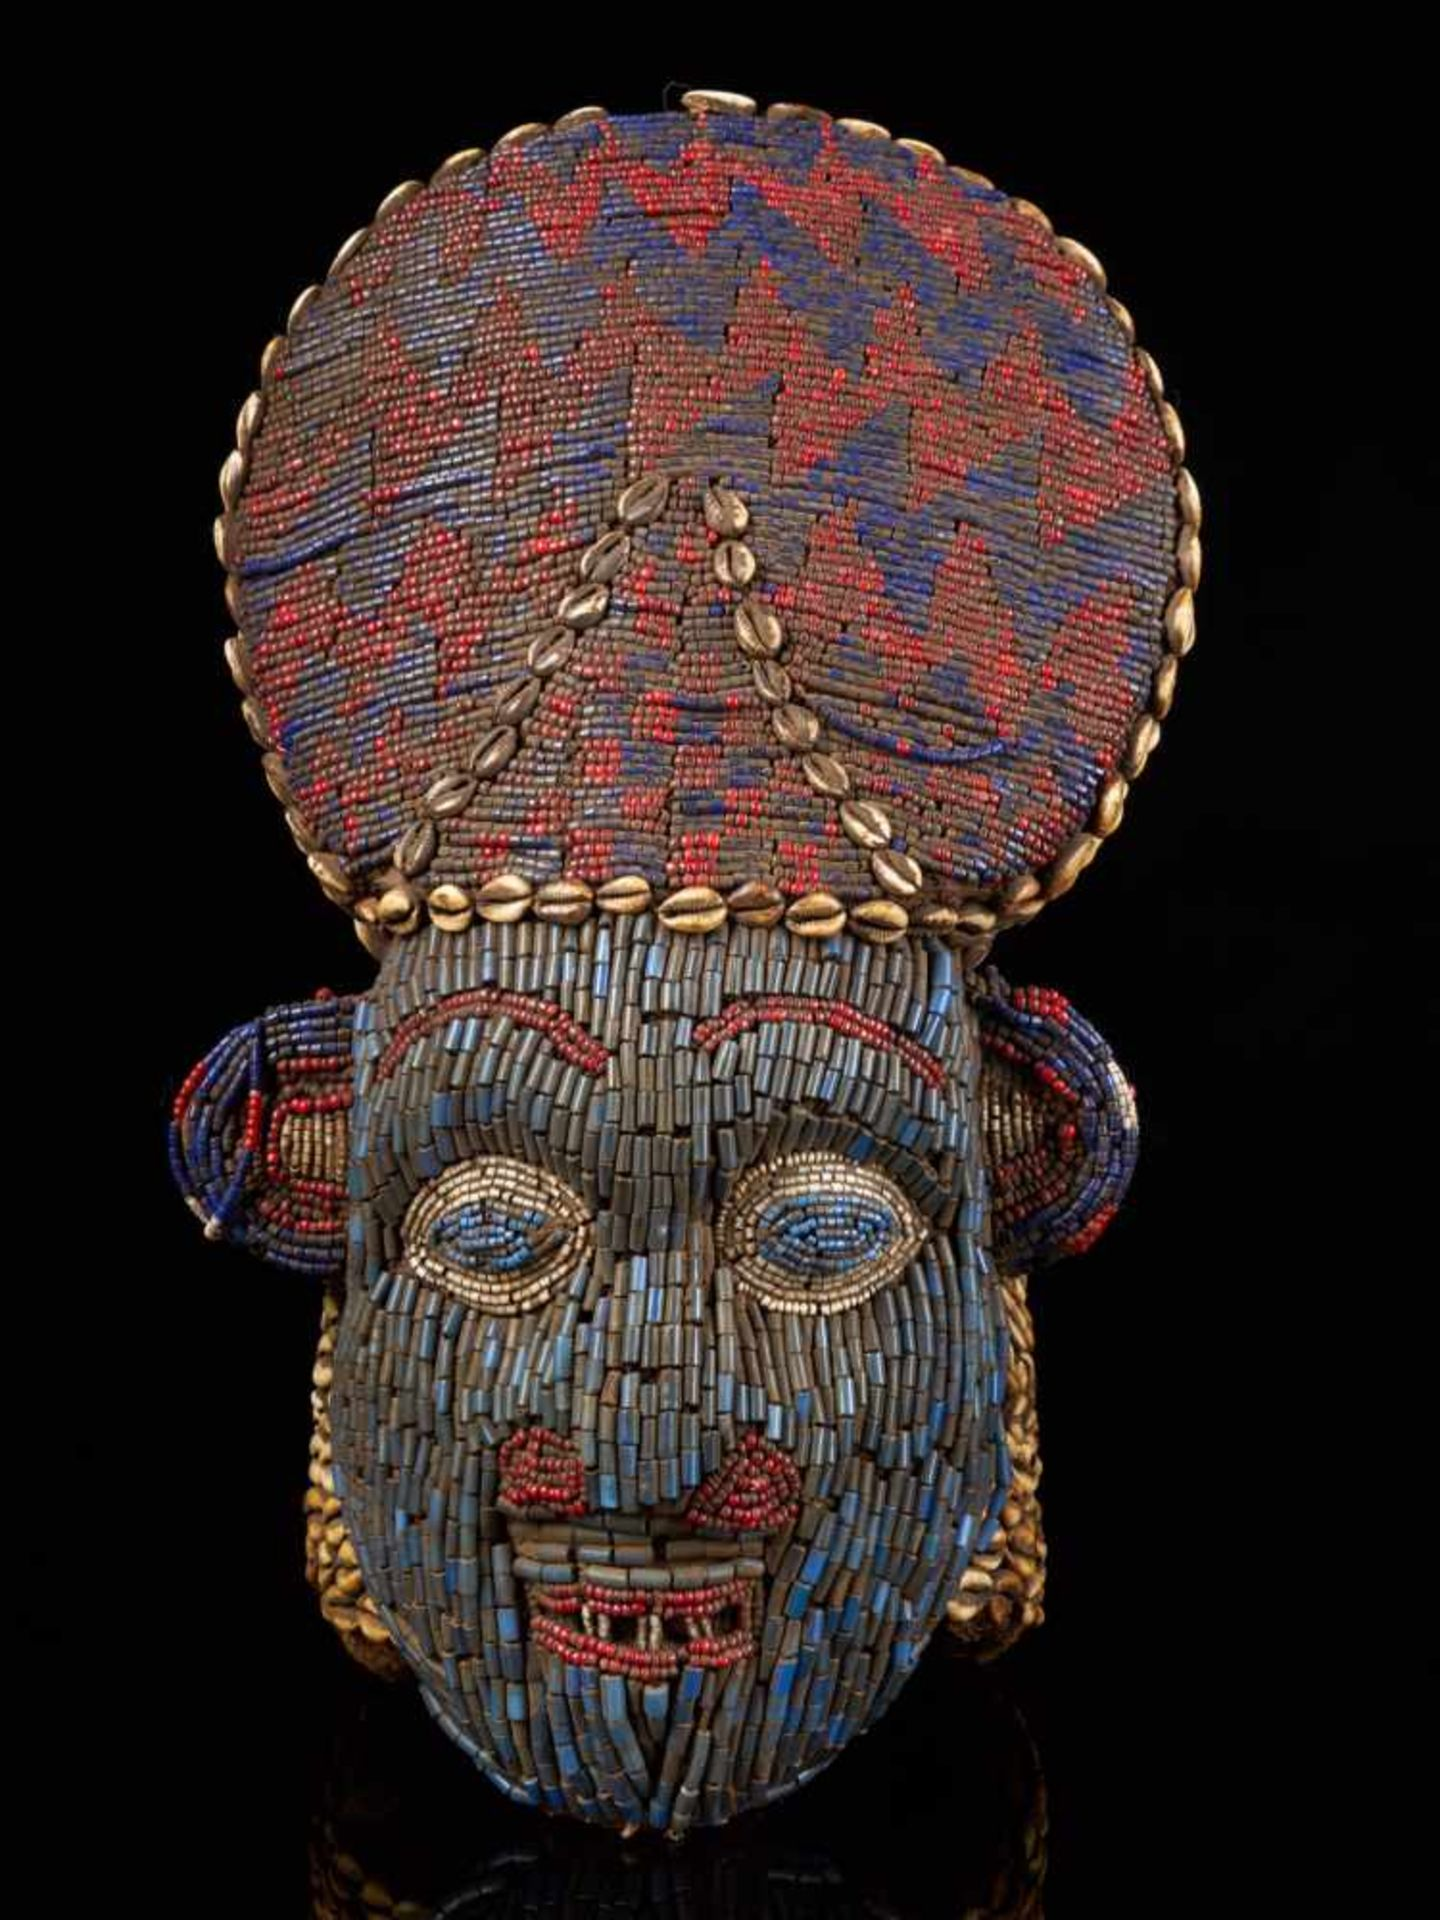 Beaded Red And Blue Helmet Mask And Kauris Decorated Back - Tribal ArtThis striking piece is - Bild 2 aus 5